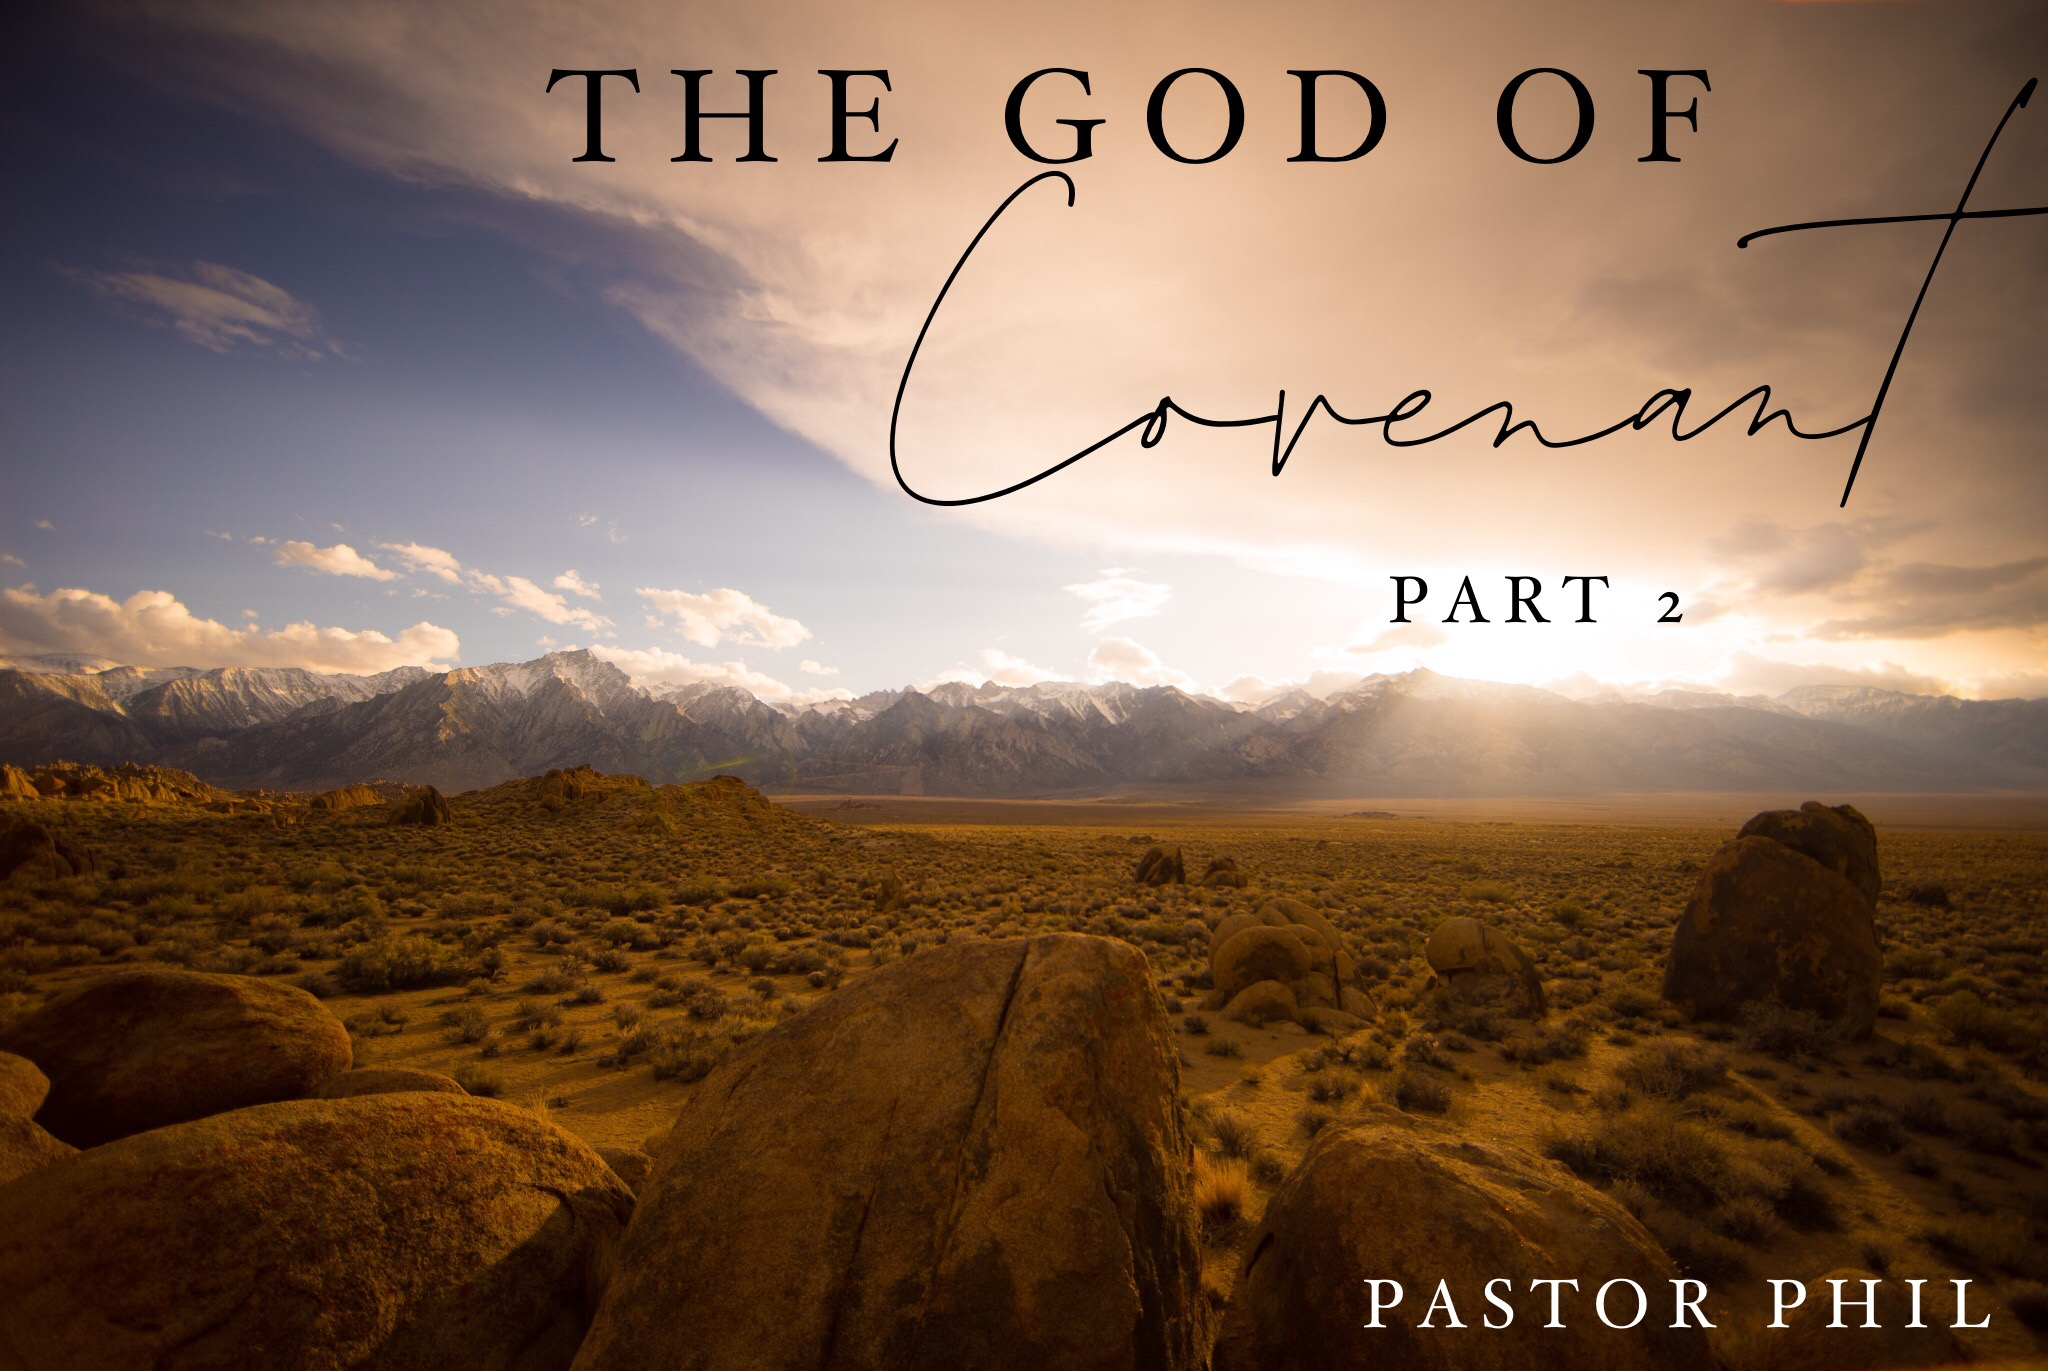 The God of Covenant Pt 2